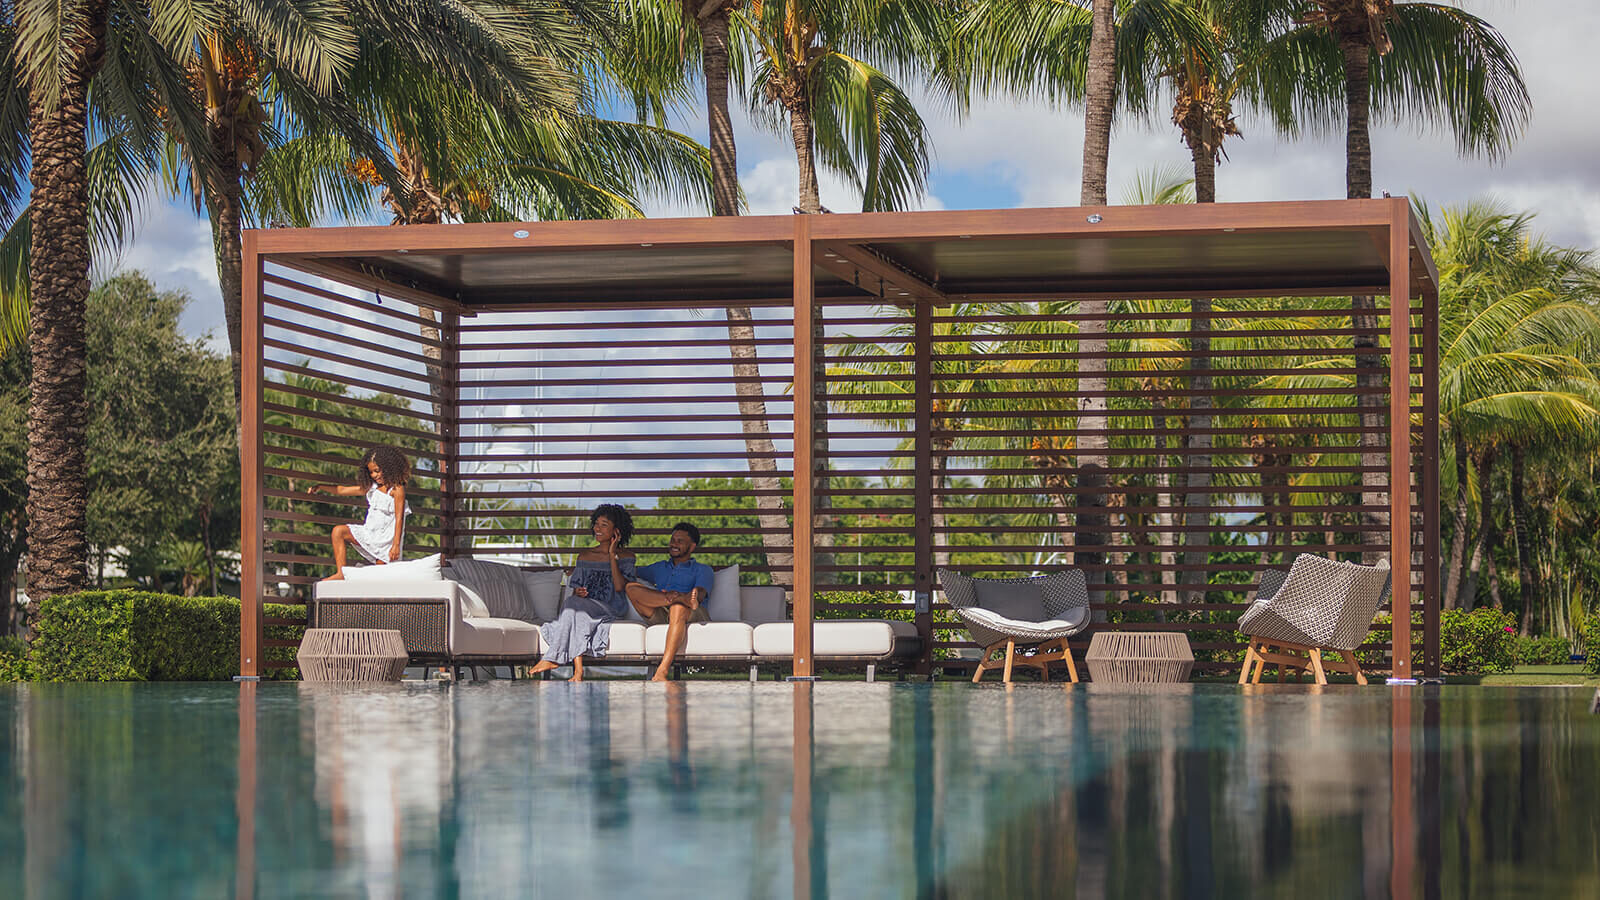 Family sitting on beige lounge seating under Tuuci's Equinox cabana with palm trees in the background